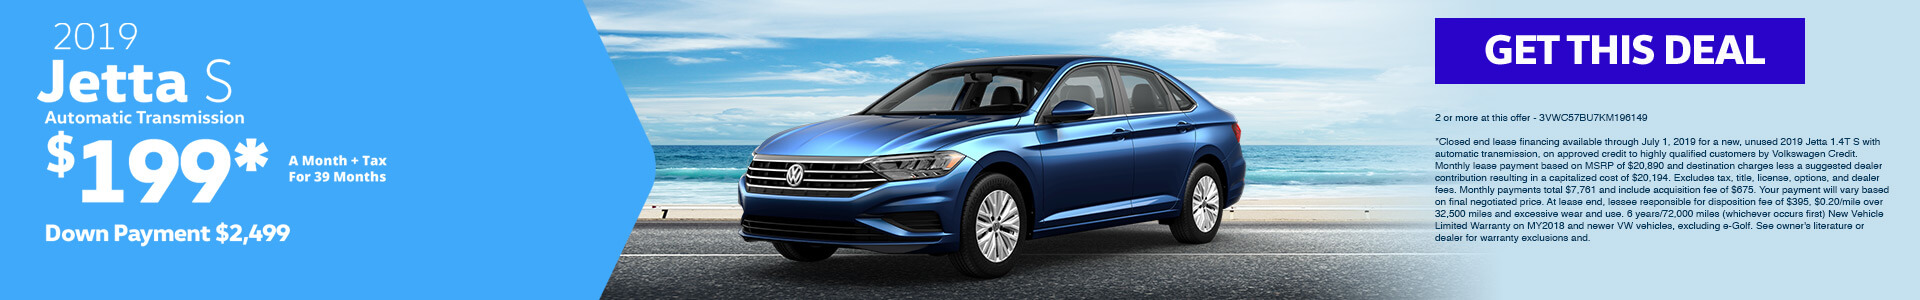 2019 Jetta Lease for $199